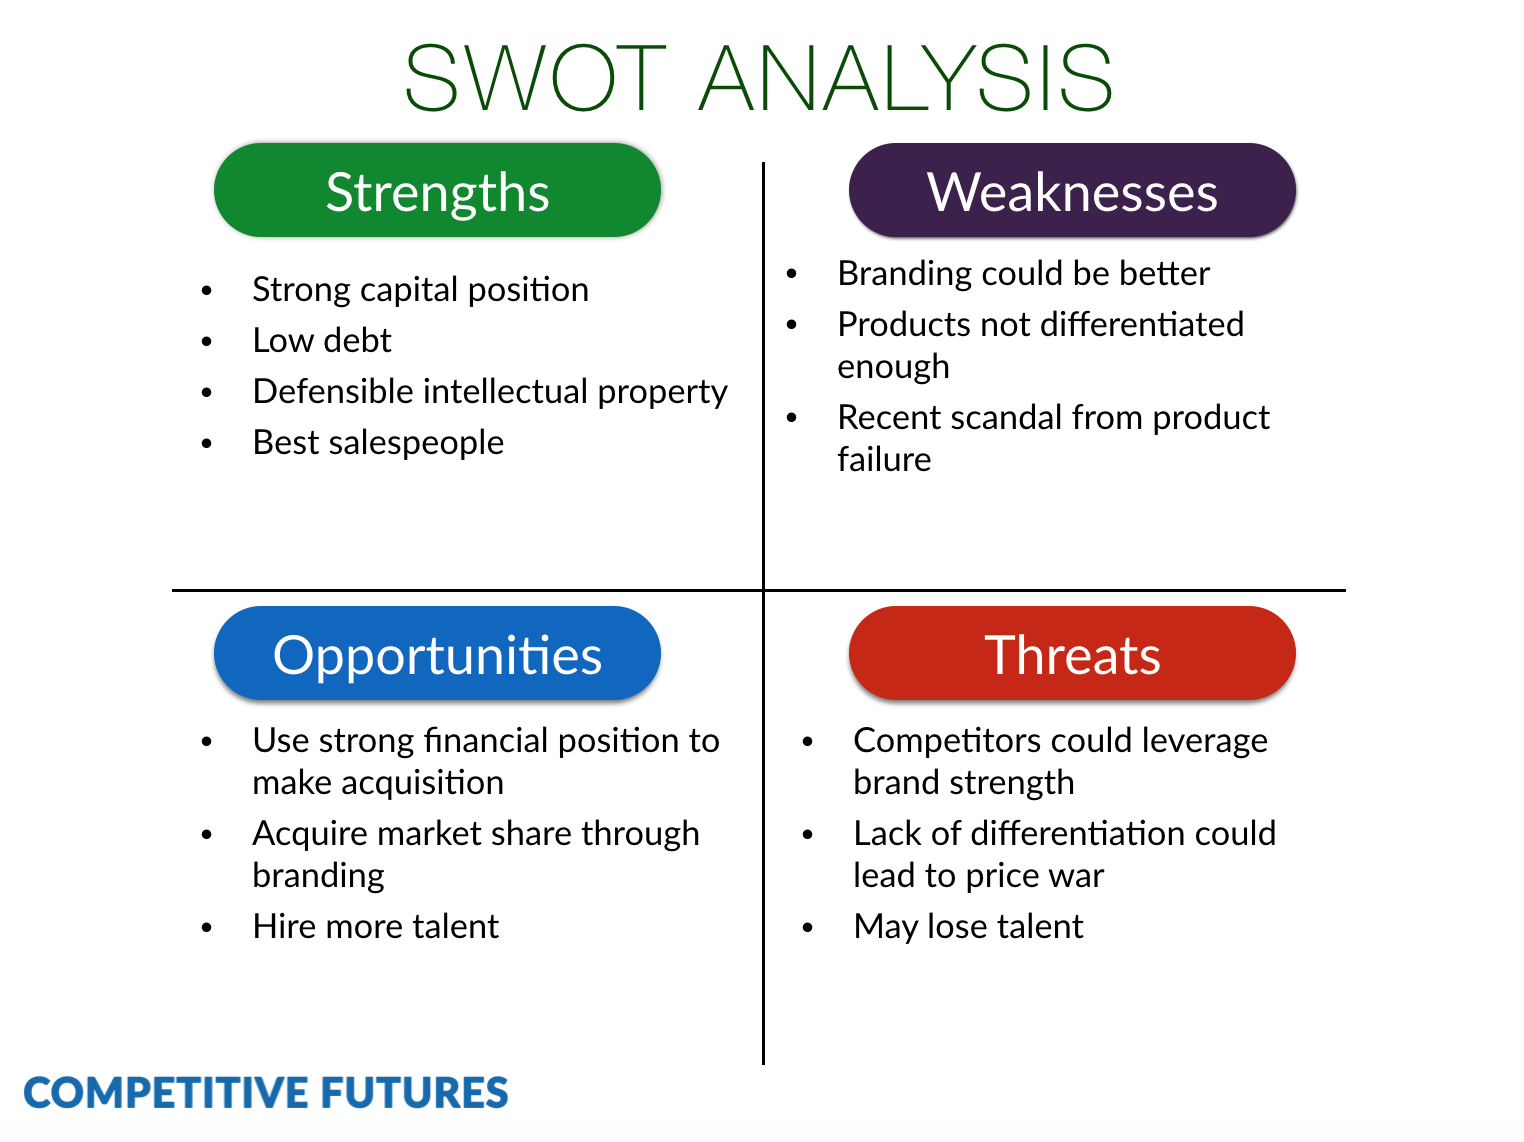 home improvement industry swot analysis A swot analysis for home a large us based company that competes in the low cost home improvement retail and service industry home depot swot analysis.